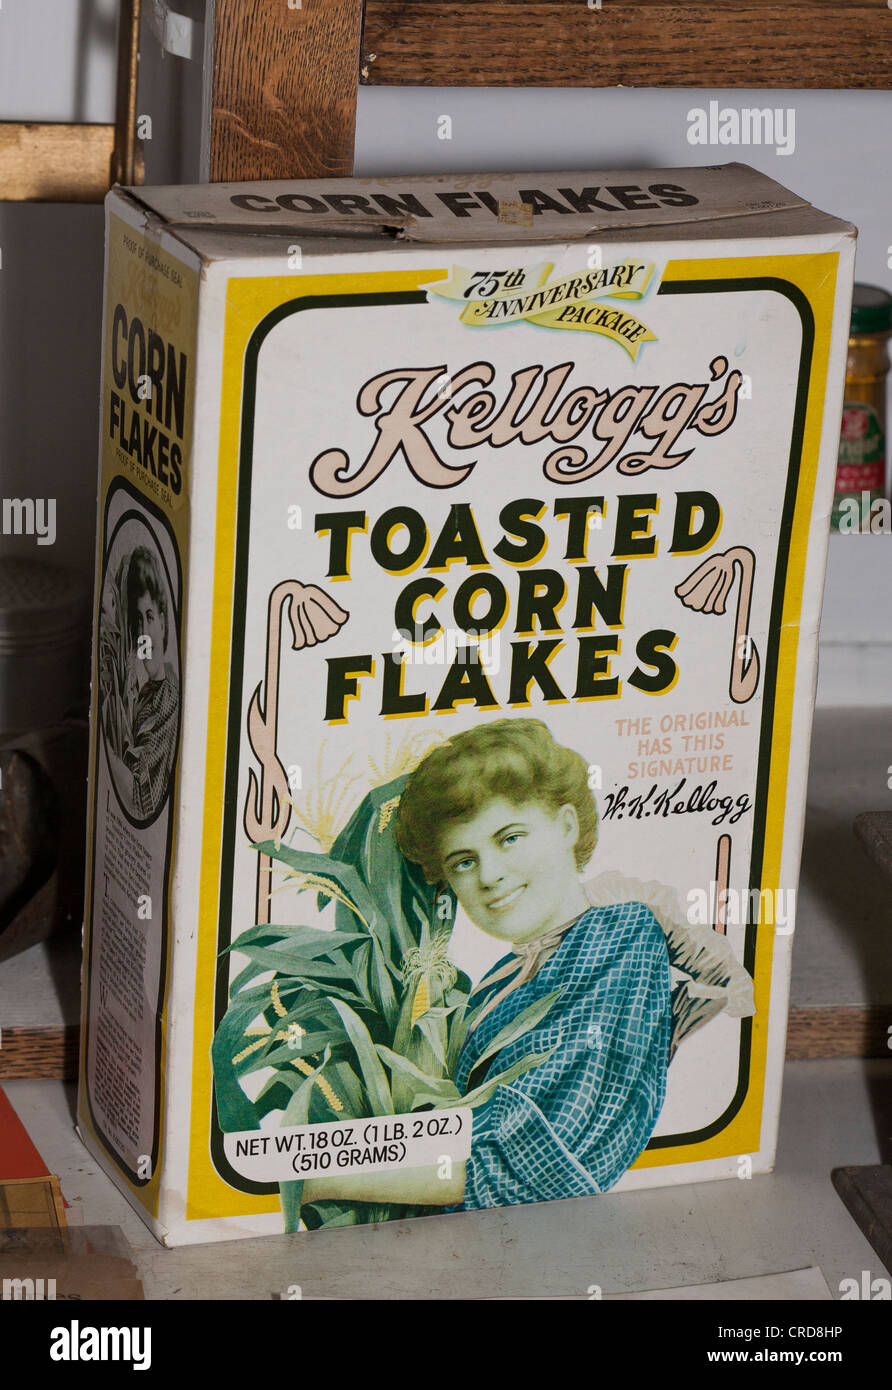 1981 box of Kellog's Corn Flakes. A faded box from the 75th anniversary of the cereal. Stock Photo